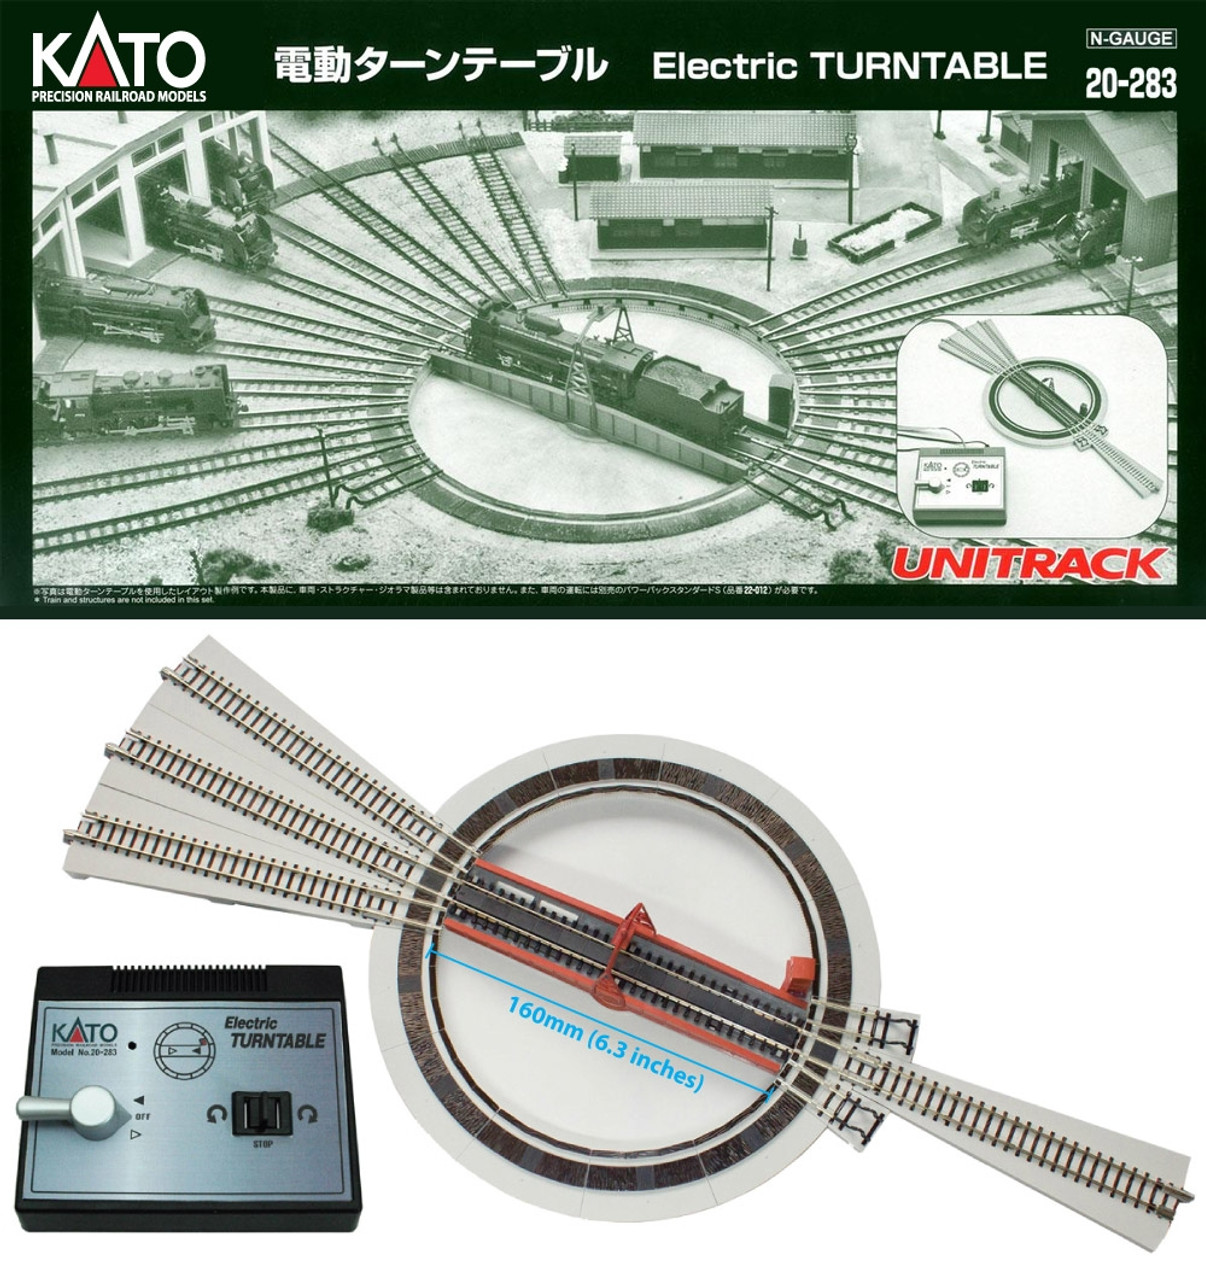 kato n 20 283 motorized turntable dcc friendly modeltrainstuff comkato n 20283 motorized turntable [ 1206 x 1280 Pixel ]